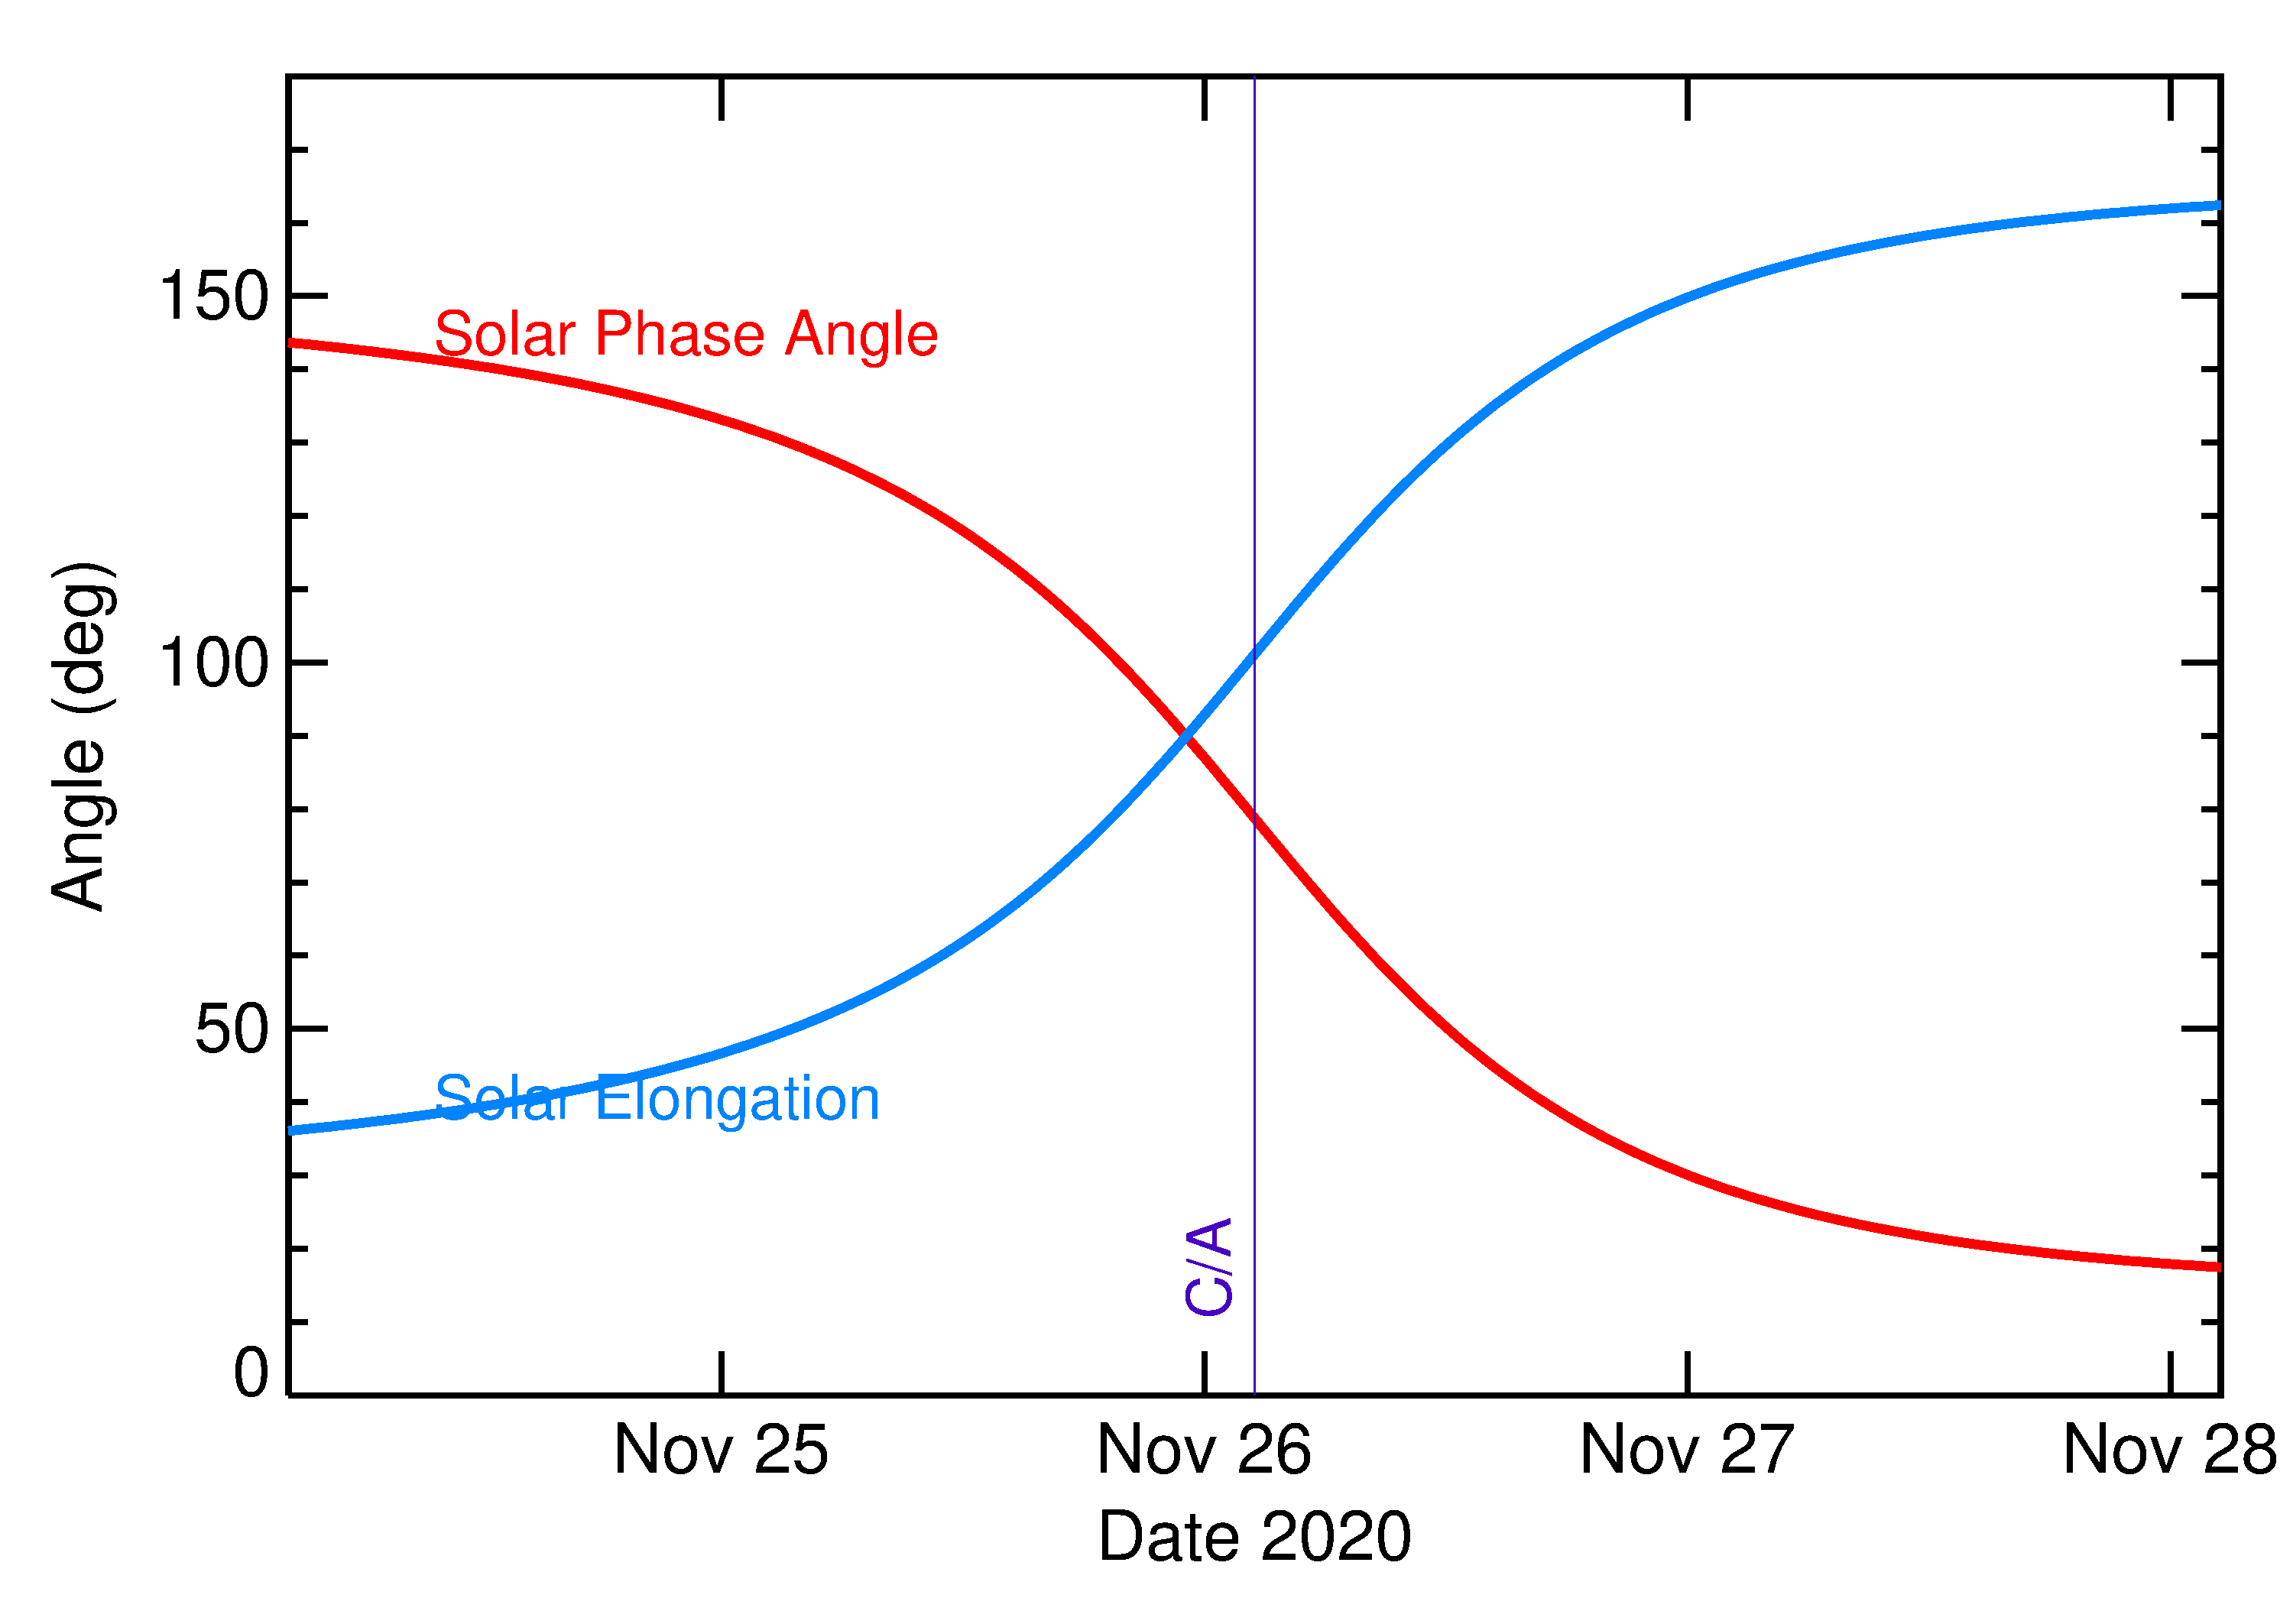 Solar Elongation and Solar Phase Angle of 2020 WG5 in the days around closest approach